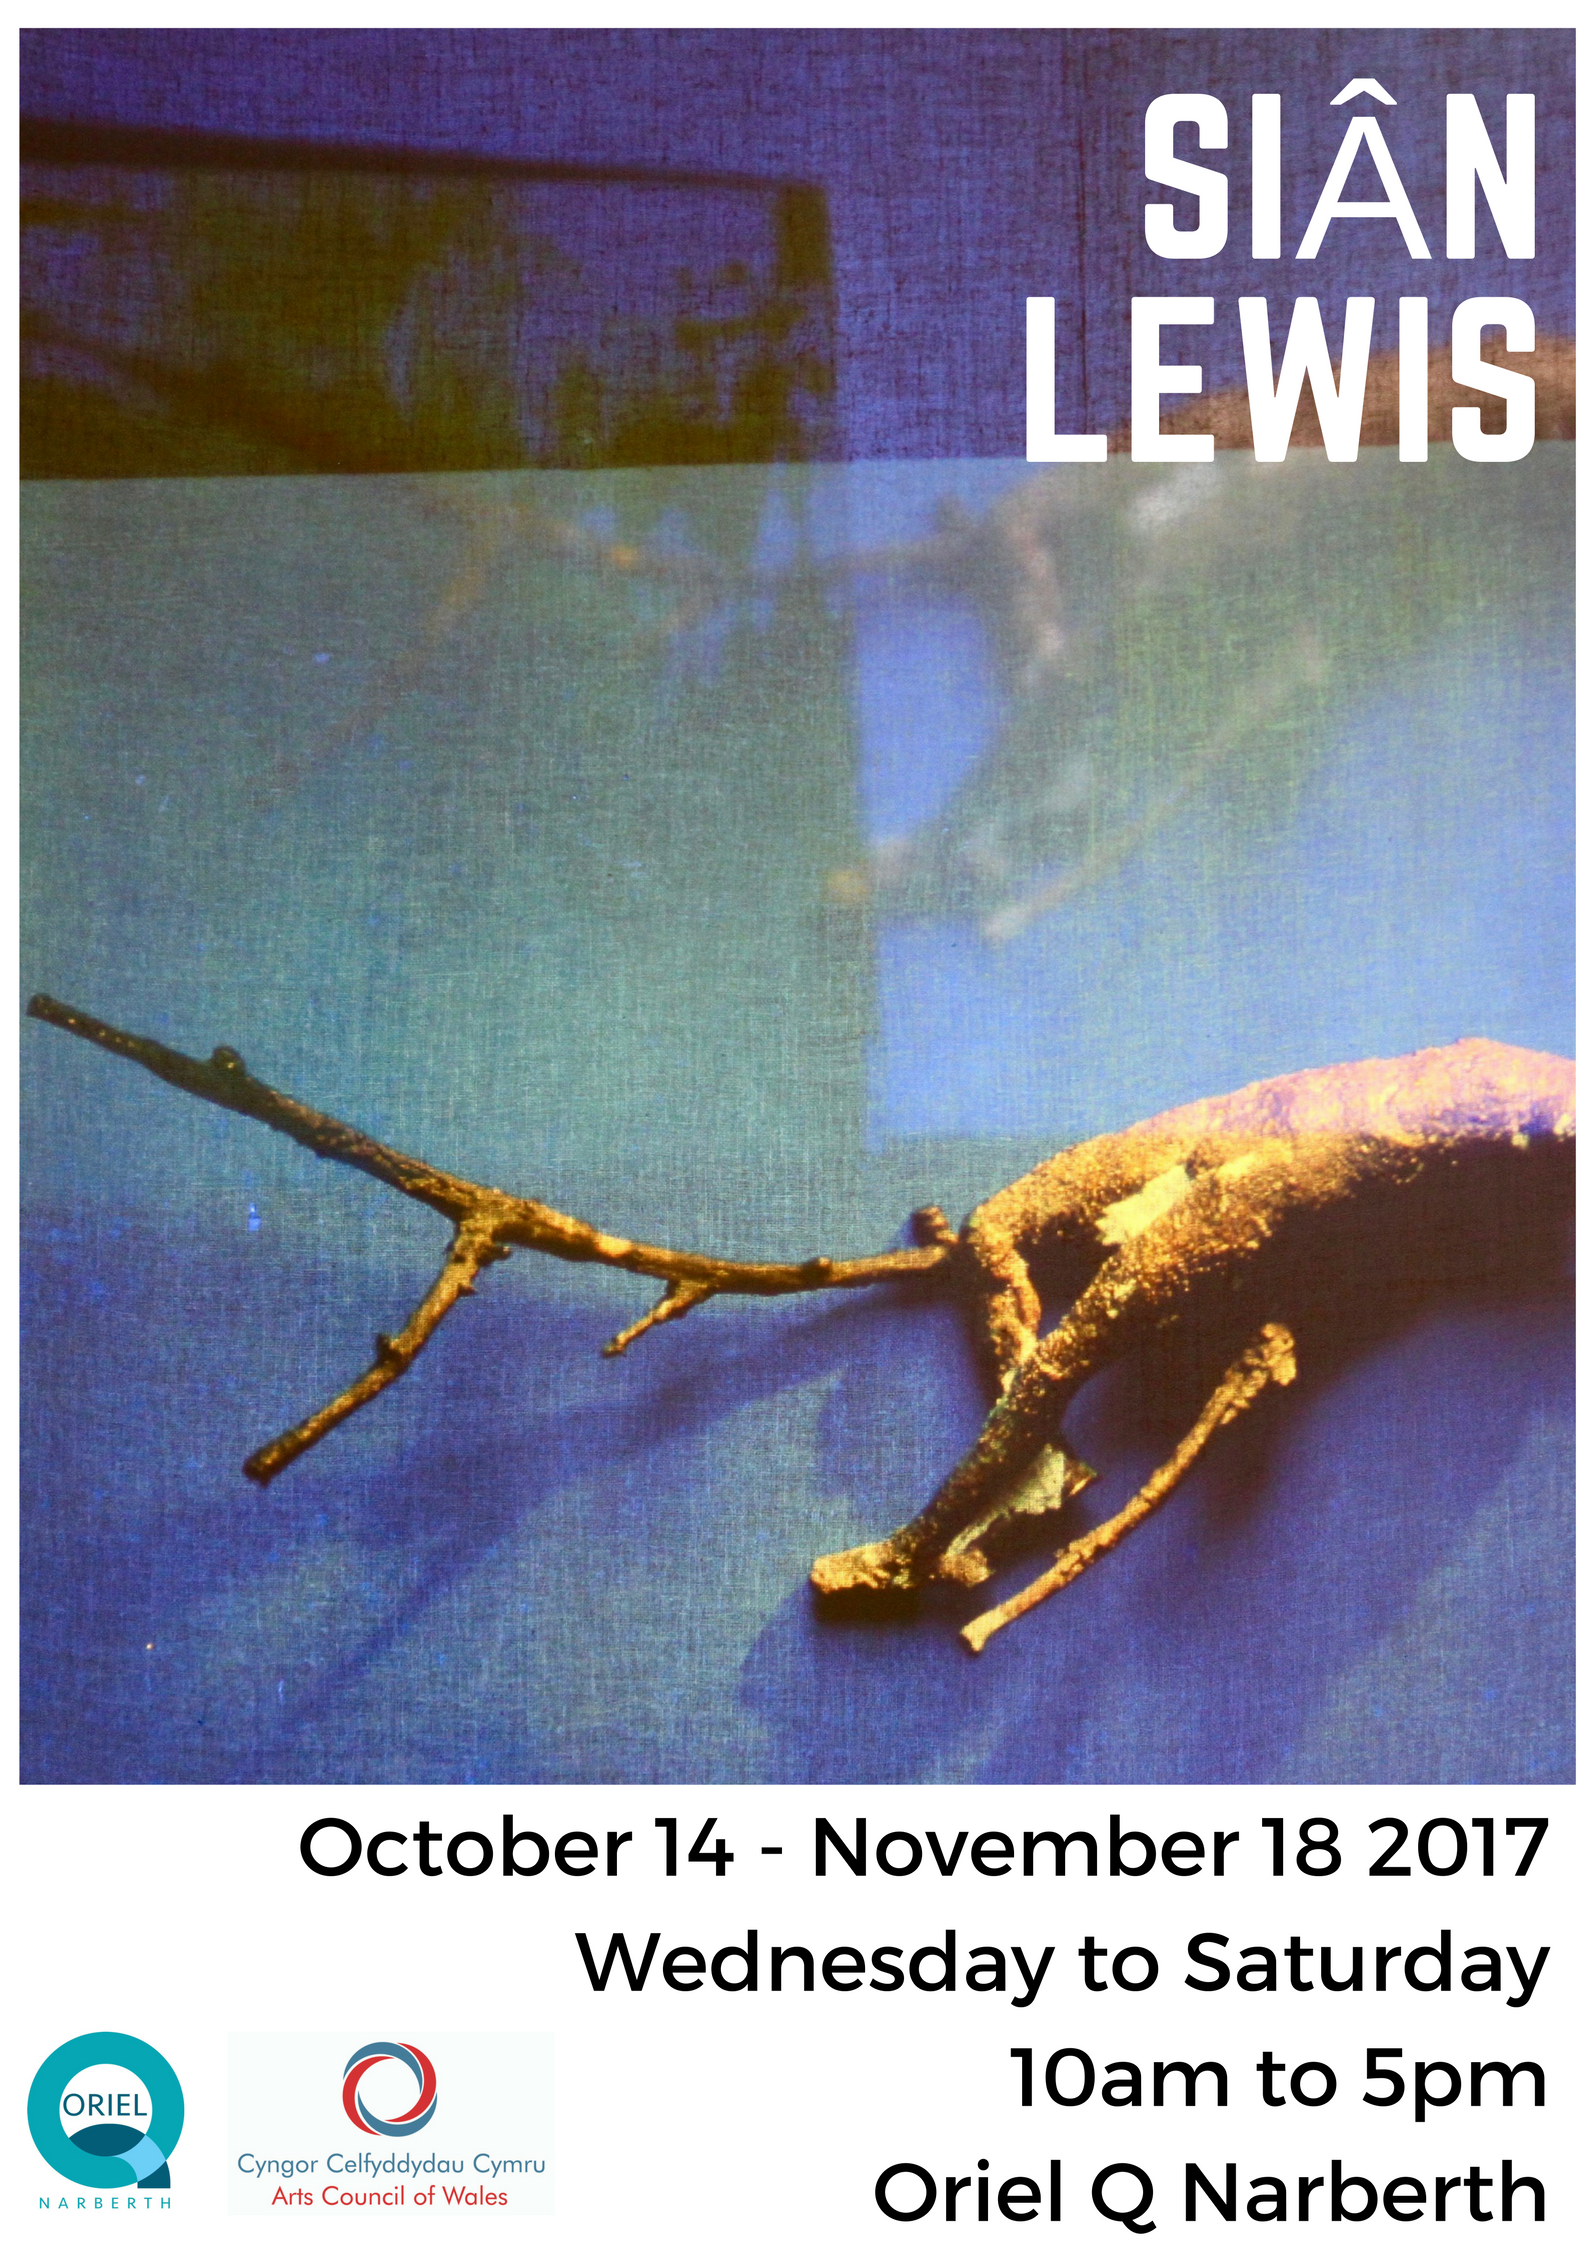 sian lewis poster.png